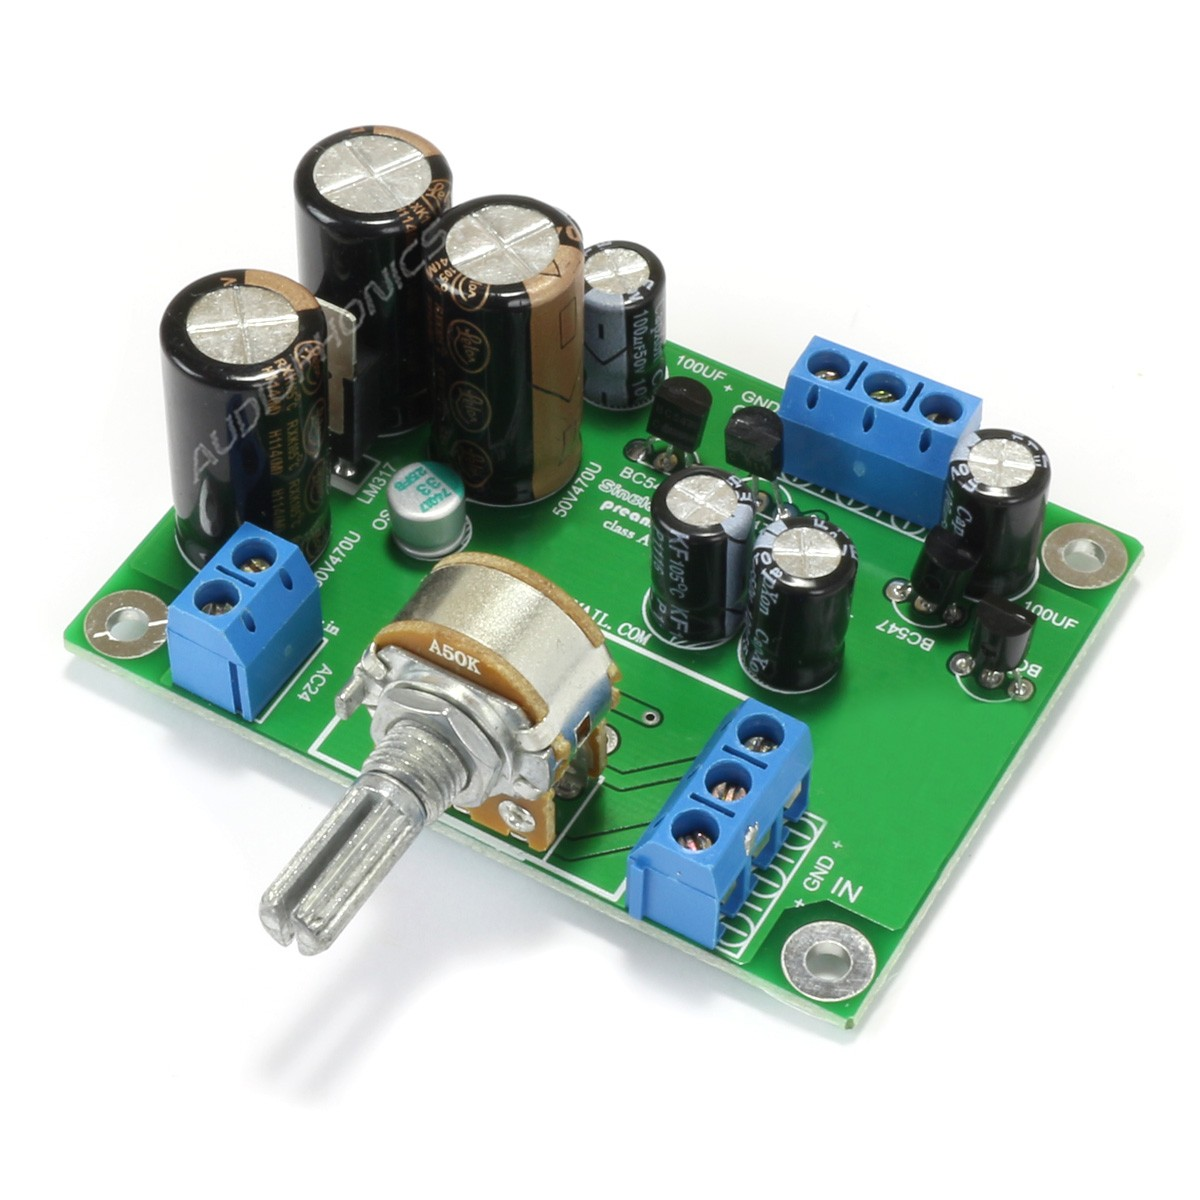 lj single ended preamplifier module class a with transistors  aa ab32291 2x250w irs2092 class d